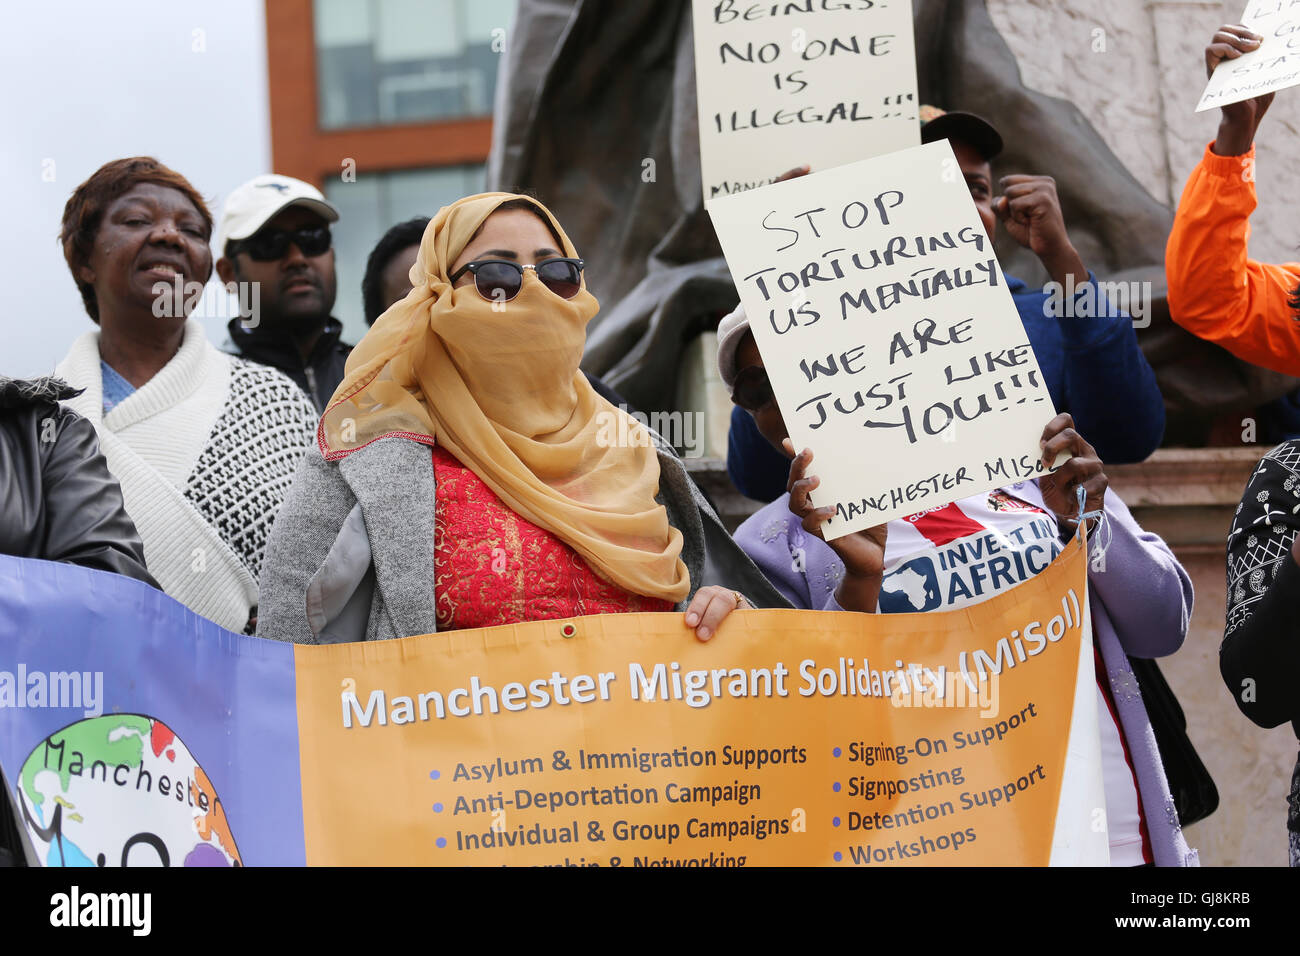 Manchester, UK. 13th Aug, 2016. A women holds up a banner representing Manchester Migrant Solidarity Campaign in - Stock Image